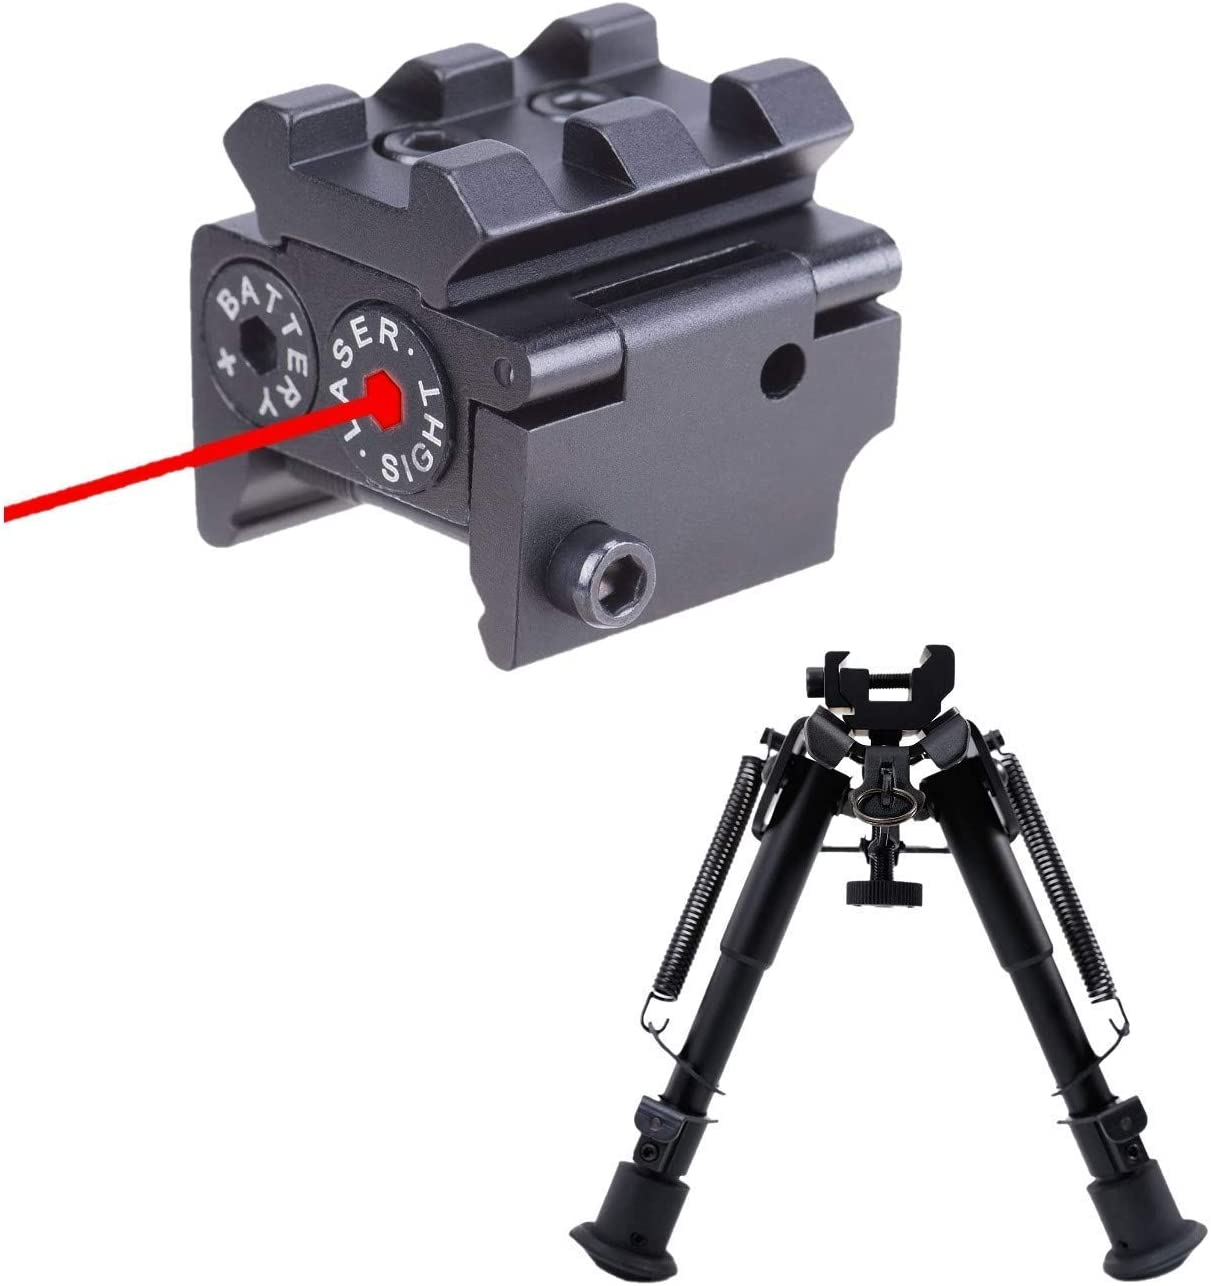 Pinty Red Laser Red Dot Sight Waterproof Military Grade Low Profile Compact & Rifle Tactical Bipod Compatible with Picatinny Rail System Adjustable 6-9 Inch Height